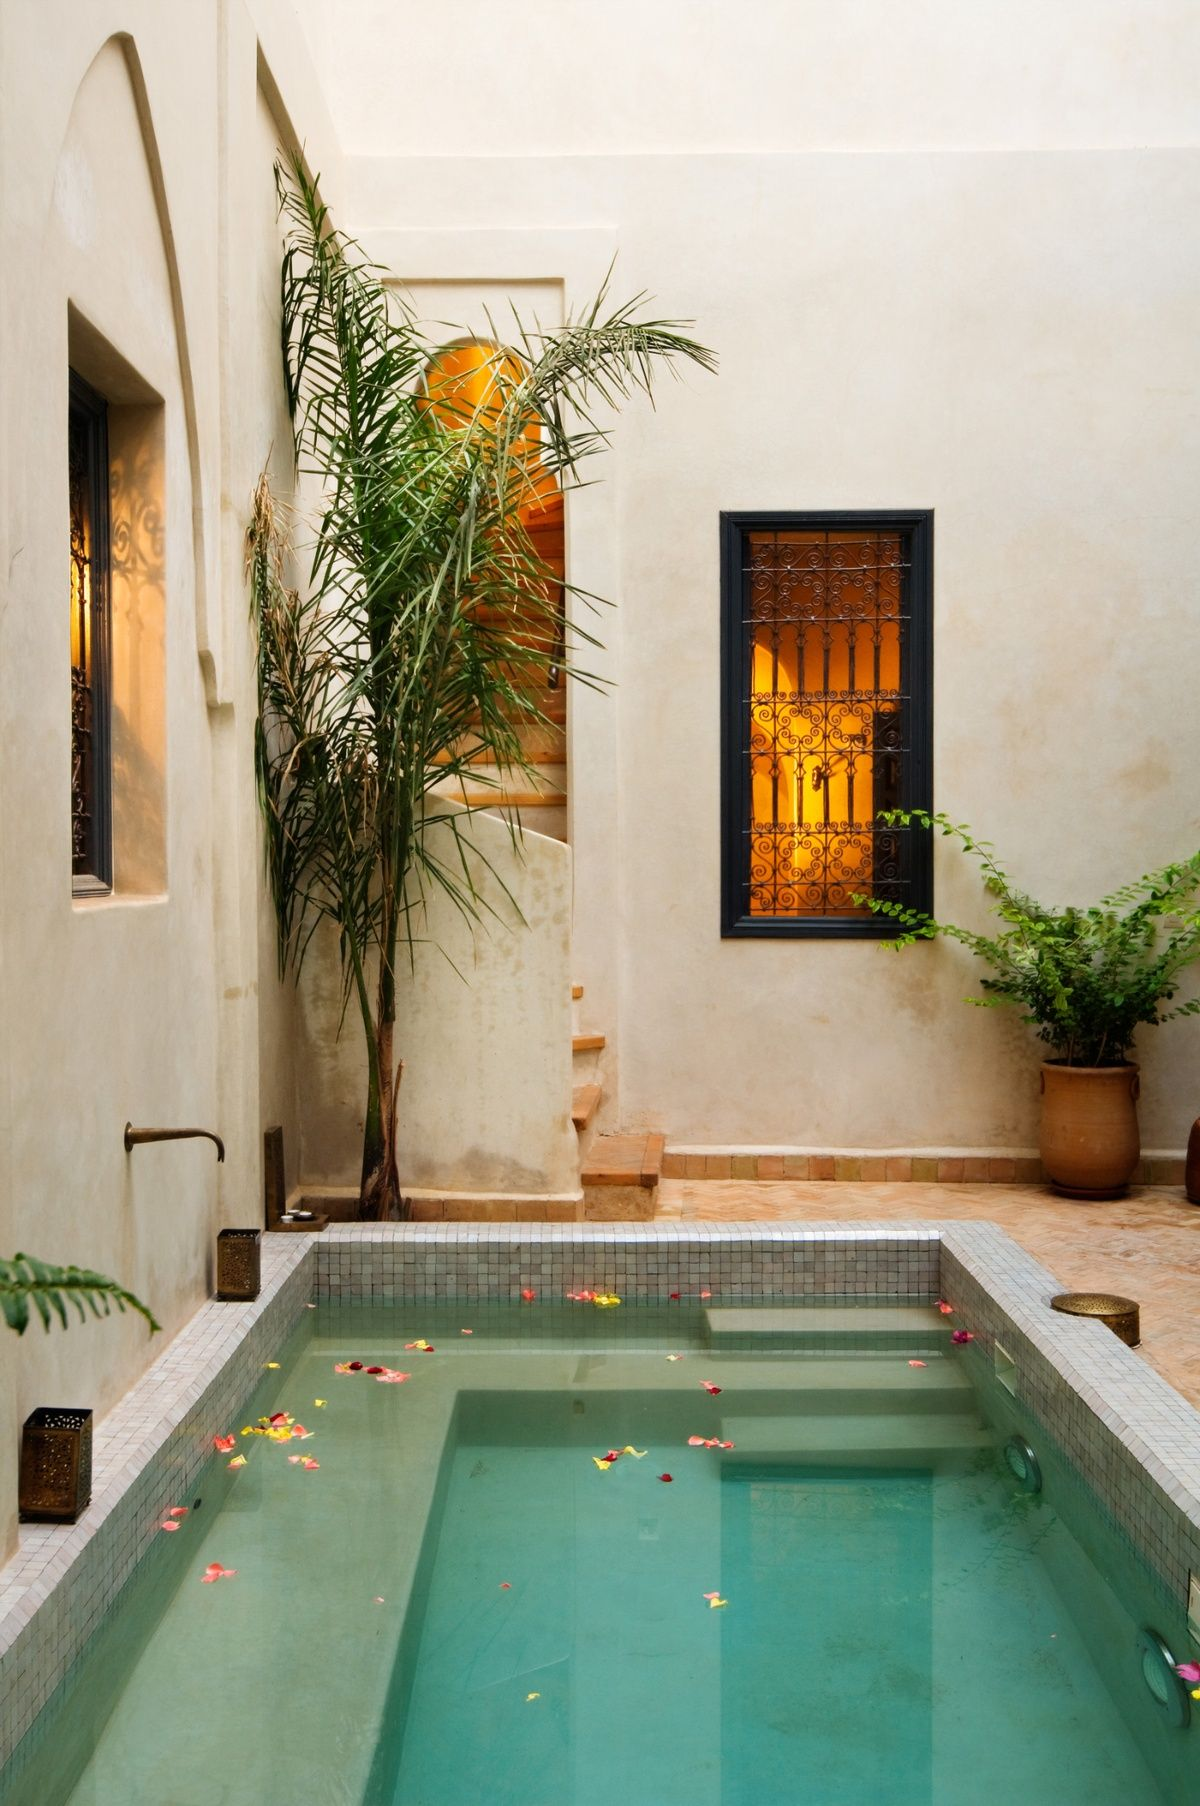 Riad Cinnamon A Magical Place In Morocco Small Pool Design Backyard Pool Small Pools